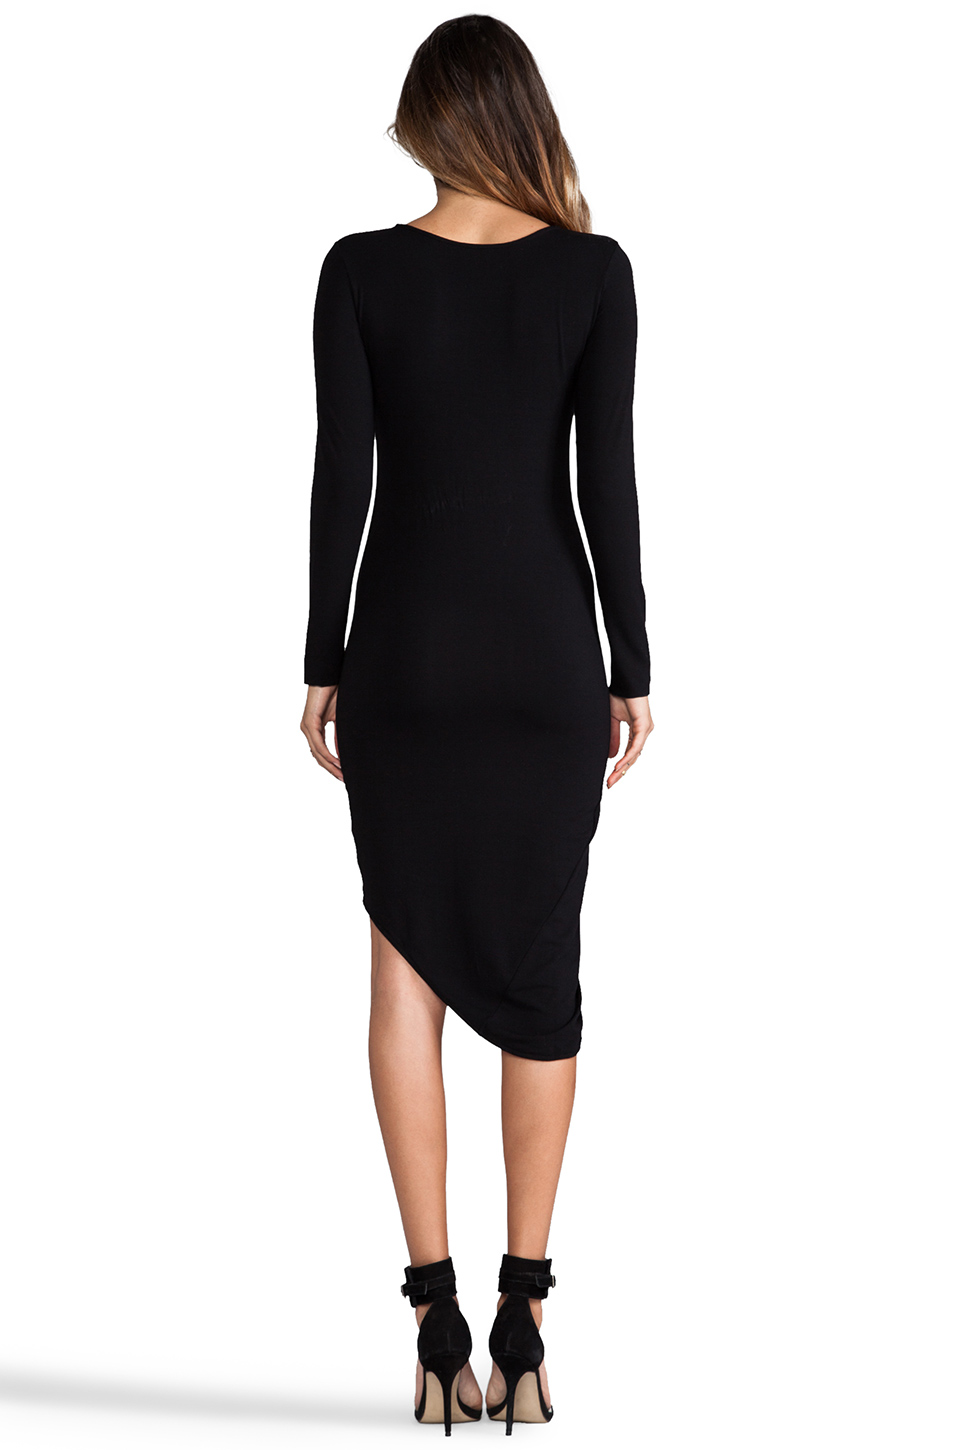 Indah Saliu Long Sleeve Sexy Dress in Black